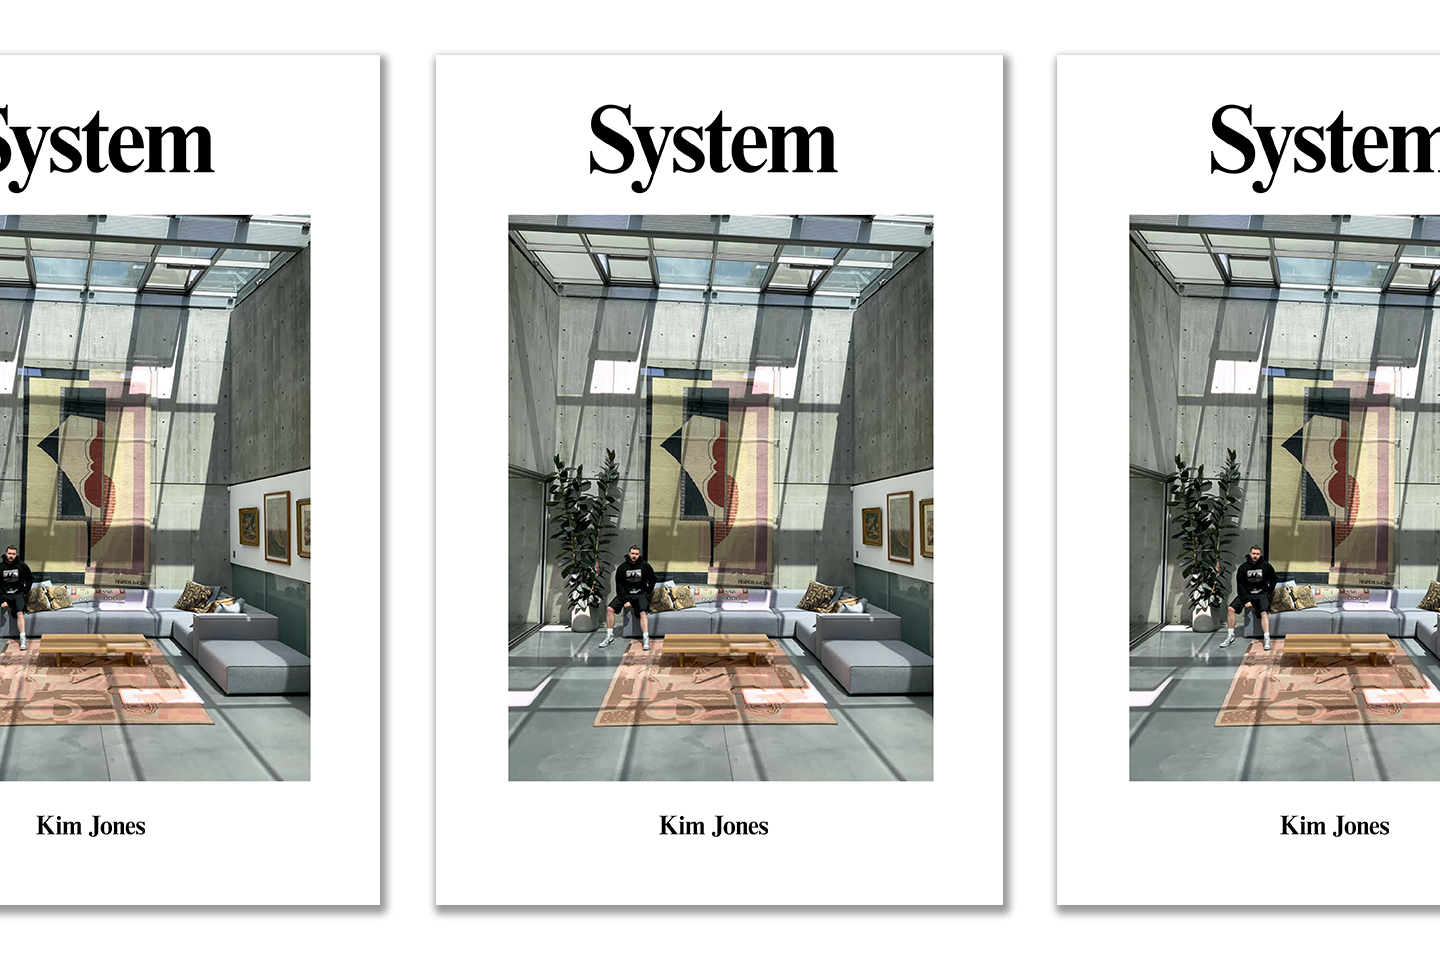 Kim Jones on the cover of System magazine.